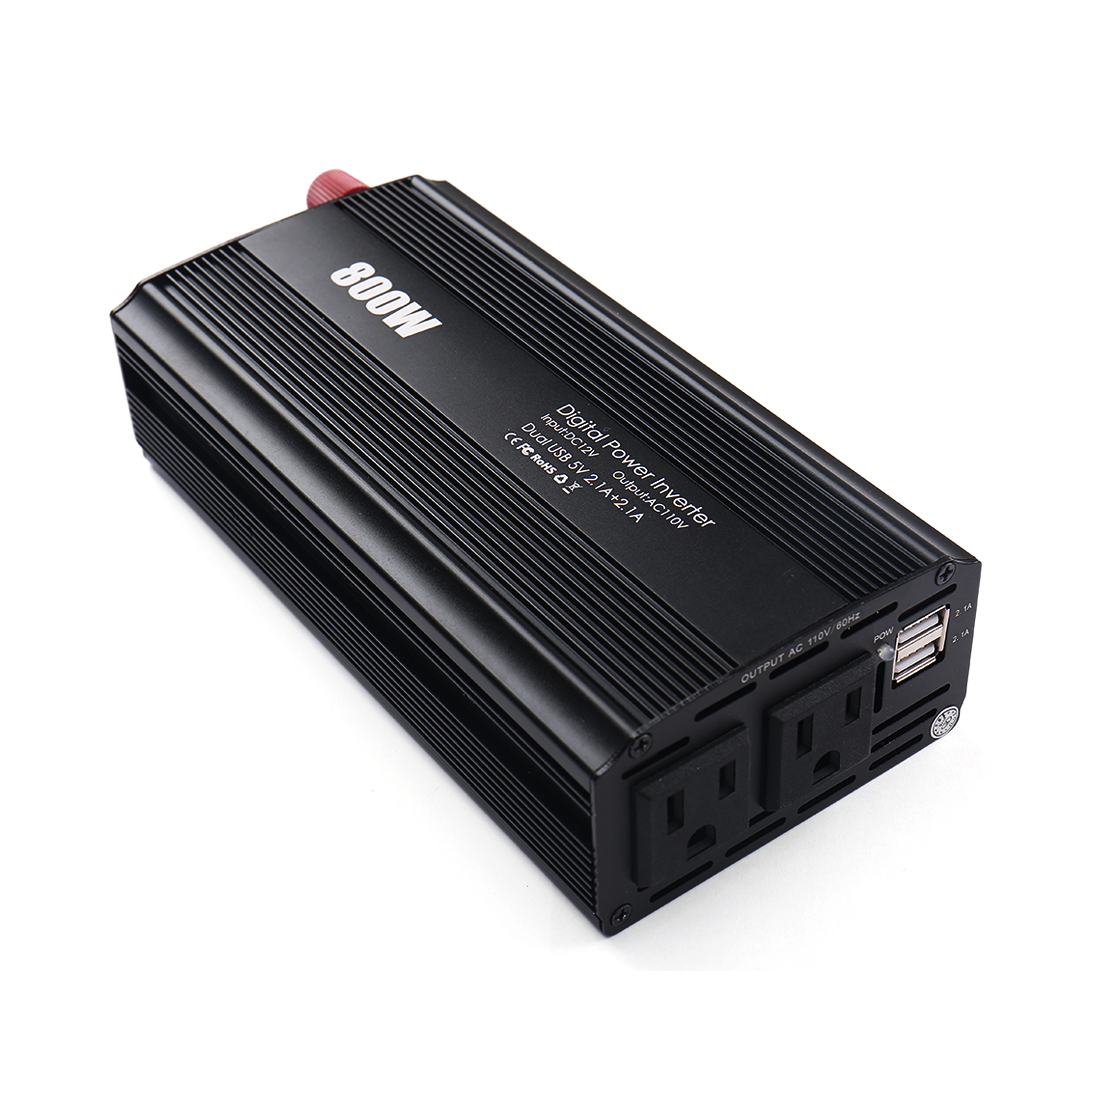 800W Car Power Inverter 2 AC Outlets 12V DC to 110V AC DUAL 2.1A USB Charging Ports